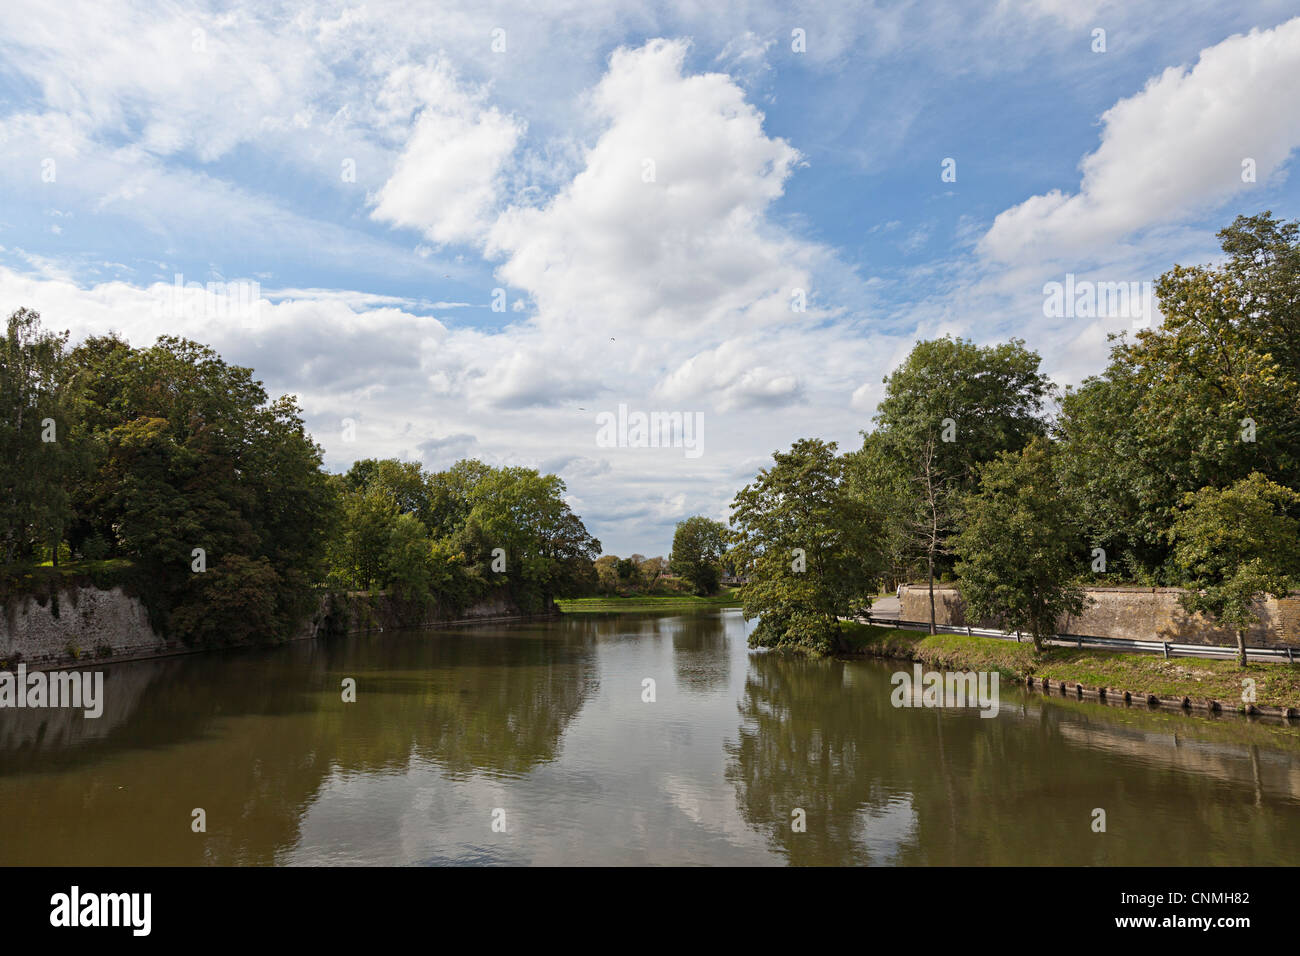 River Colne, Bergues, Nord, France - Stock Image